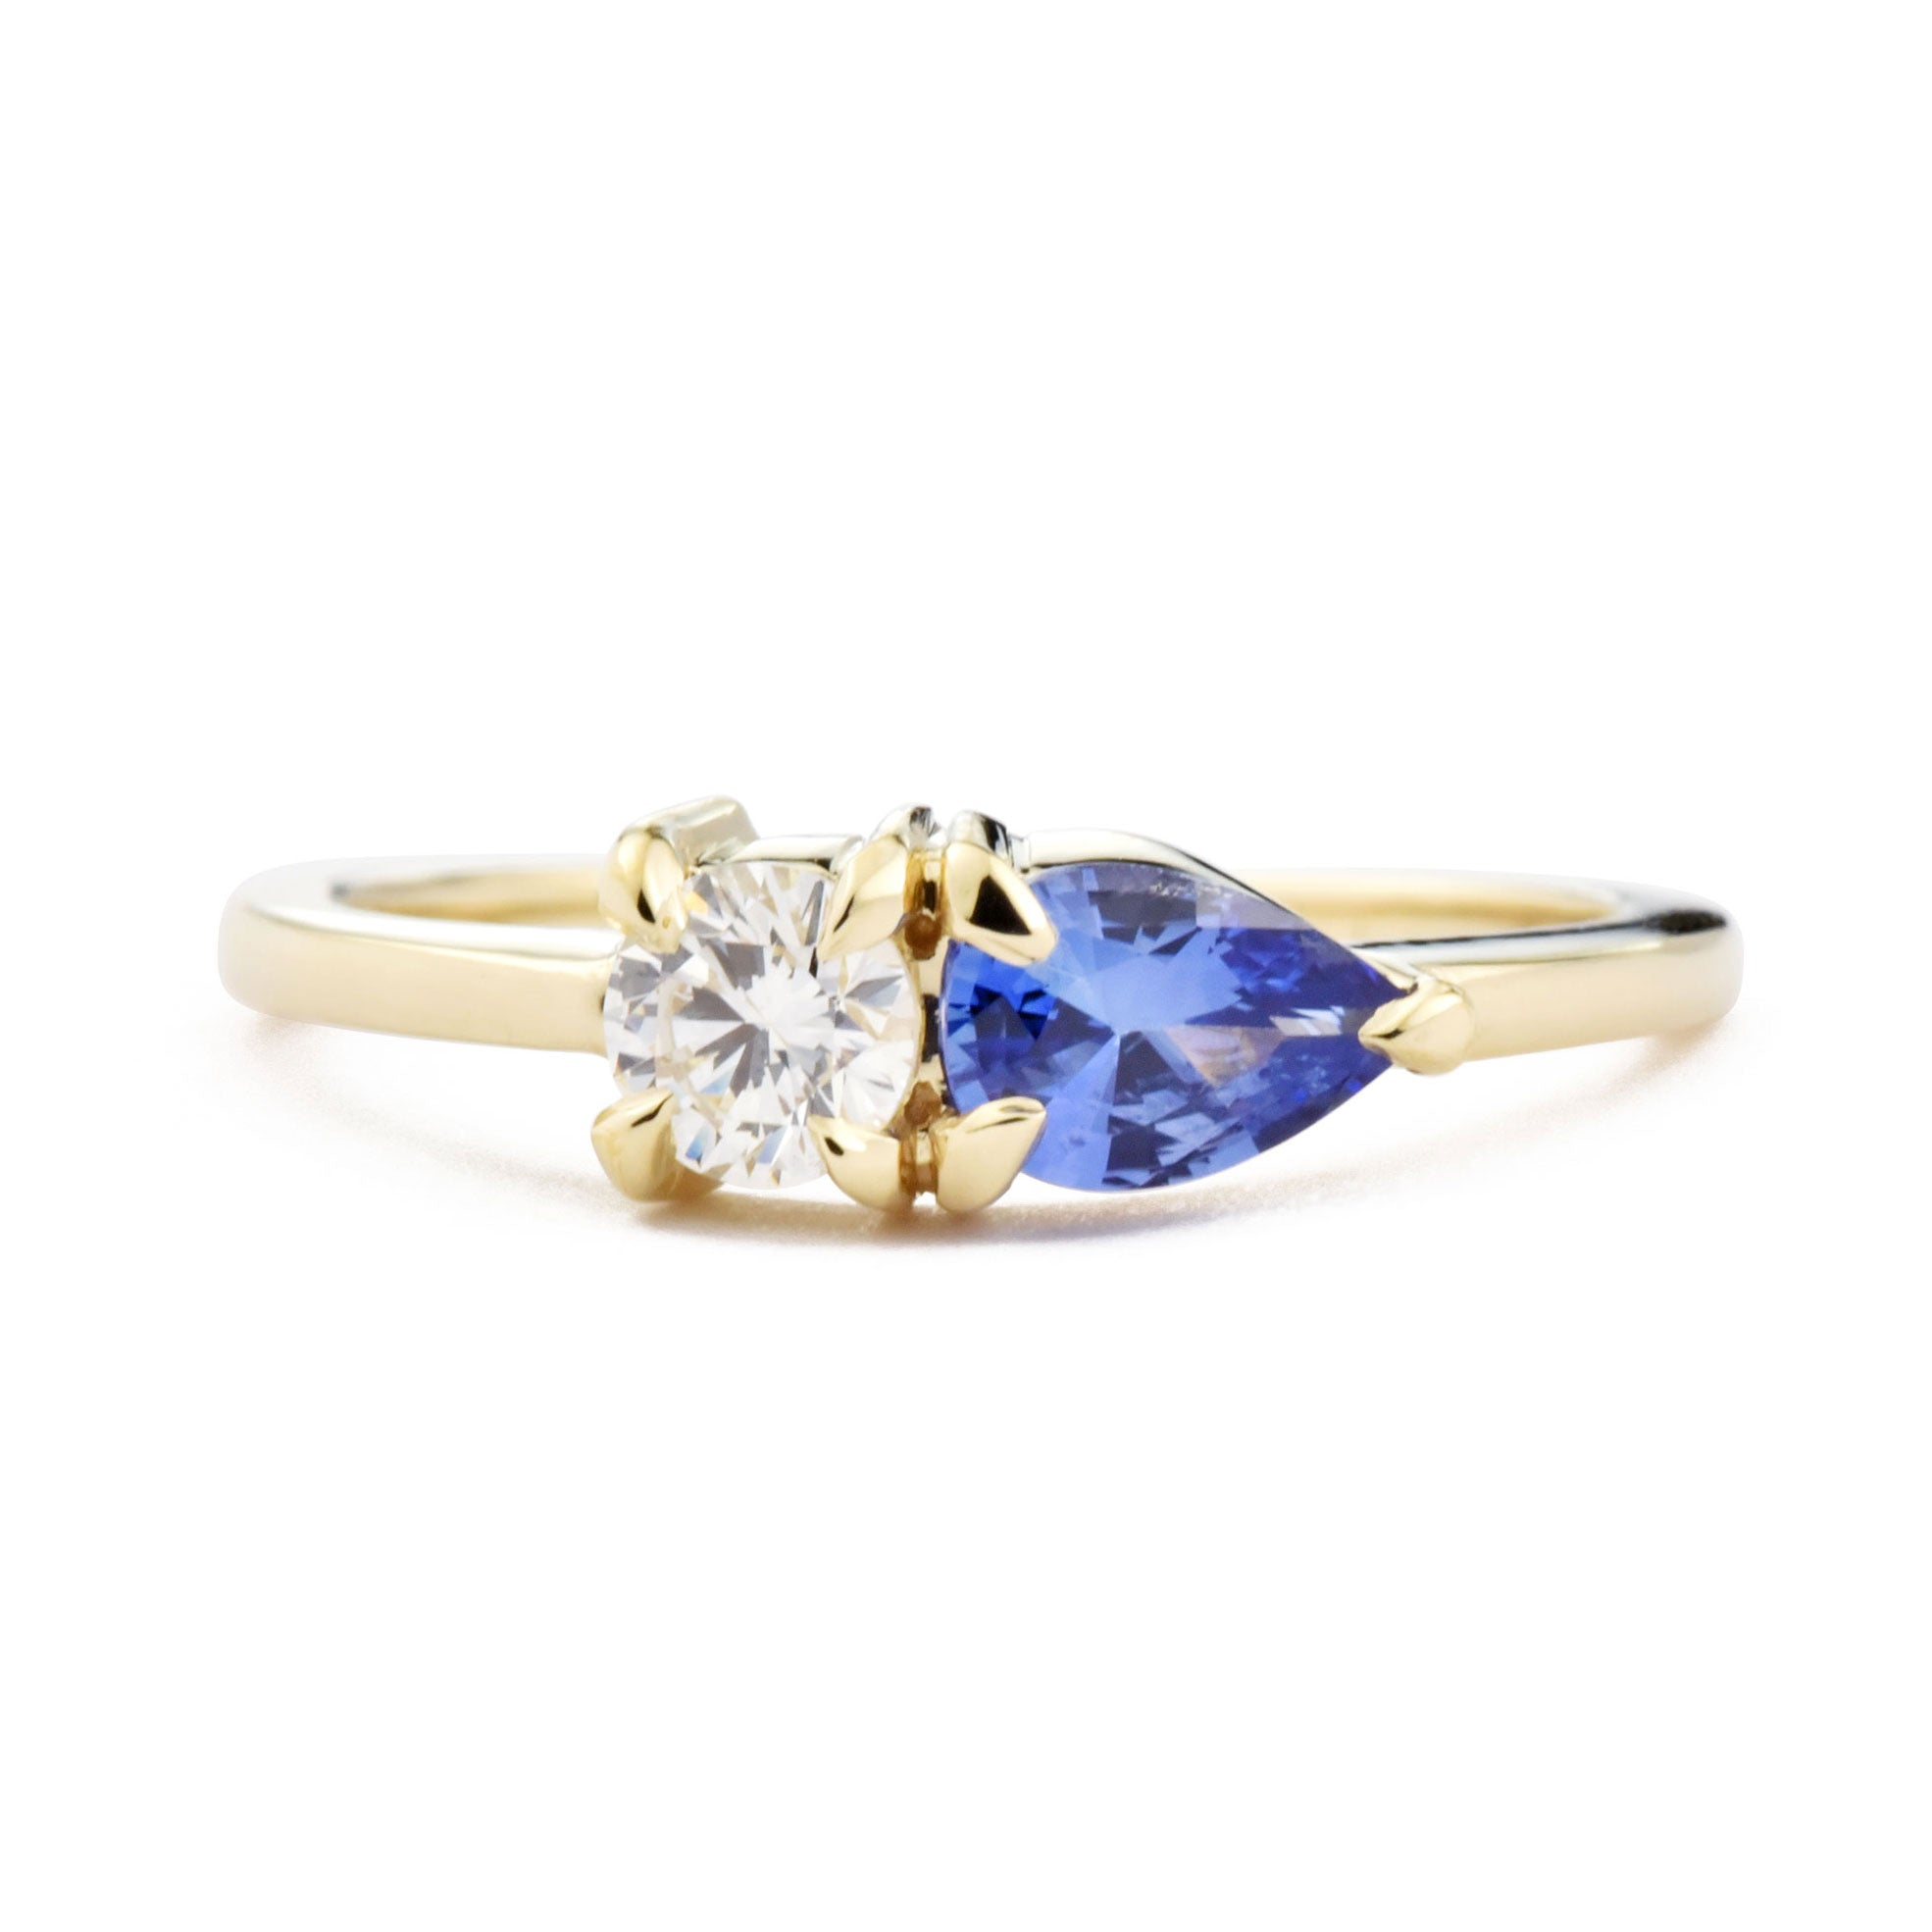 0.68ct Gemma Blue Sapphire and Diamond Ring shown from the front